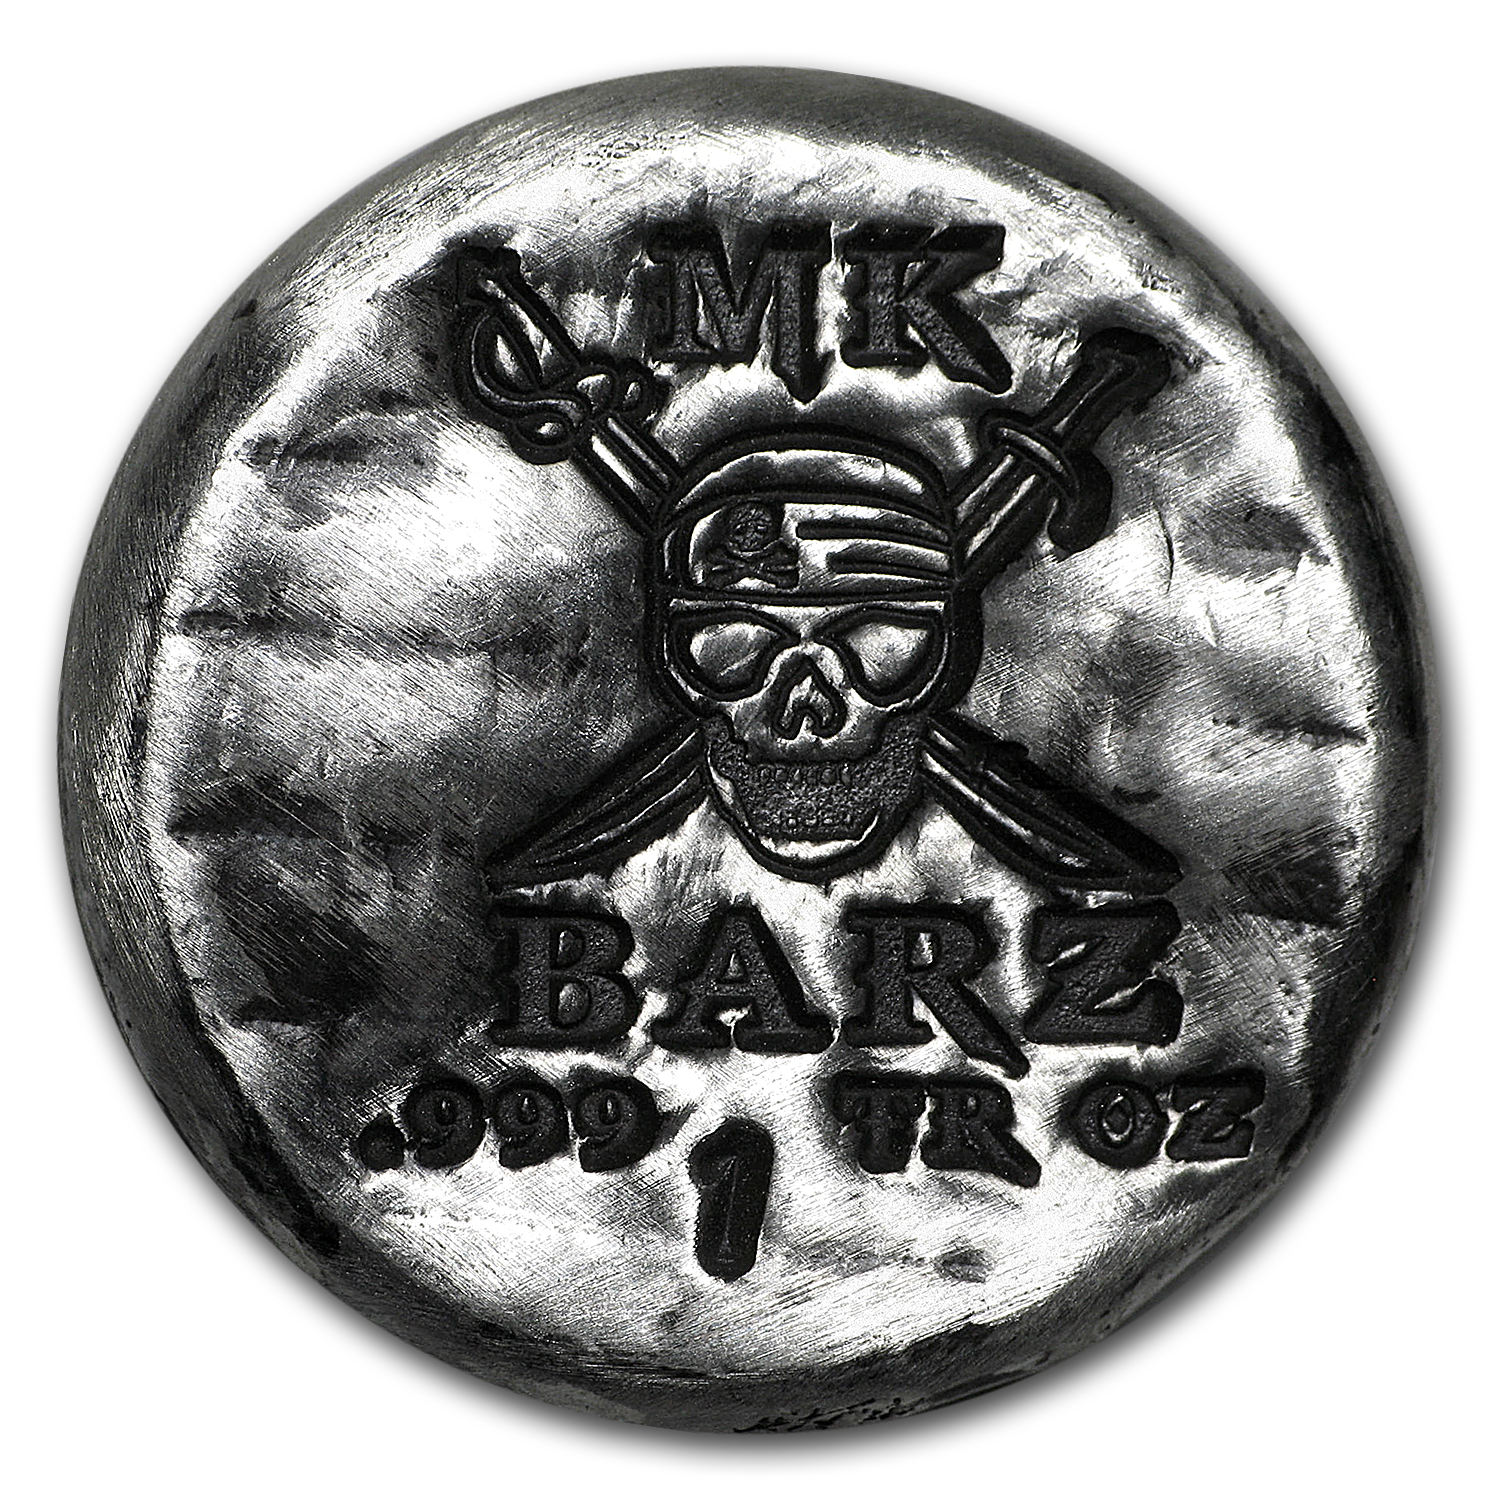 1 oz Silver Round - MK Barz & Bullion (Pirate Skull & Swords)